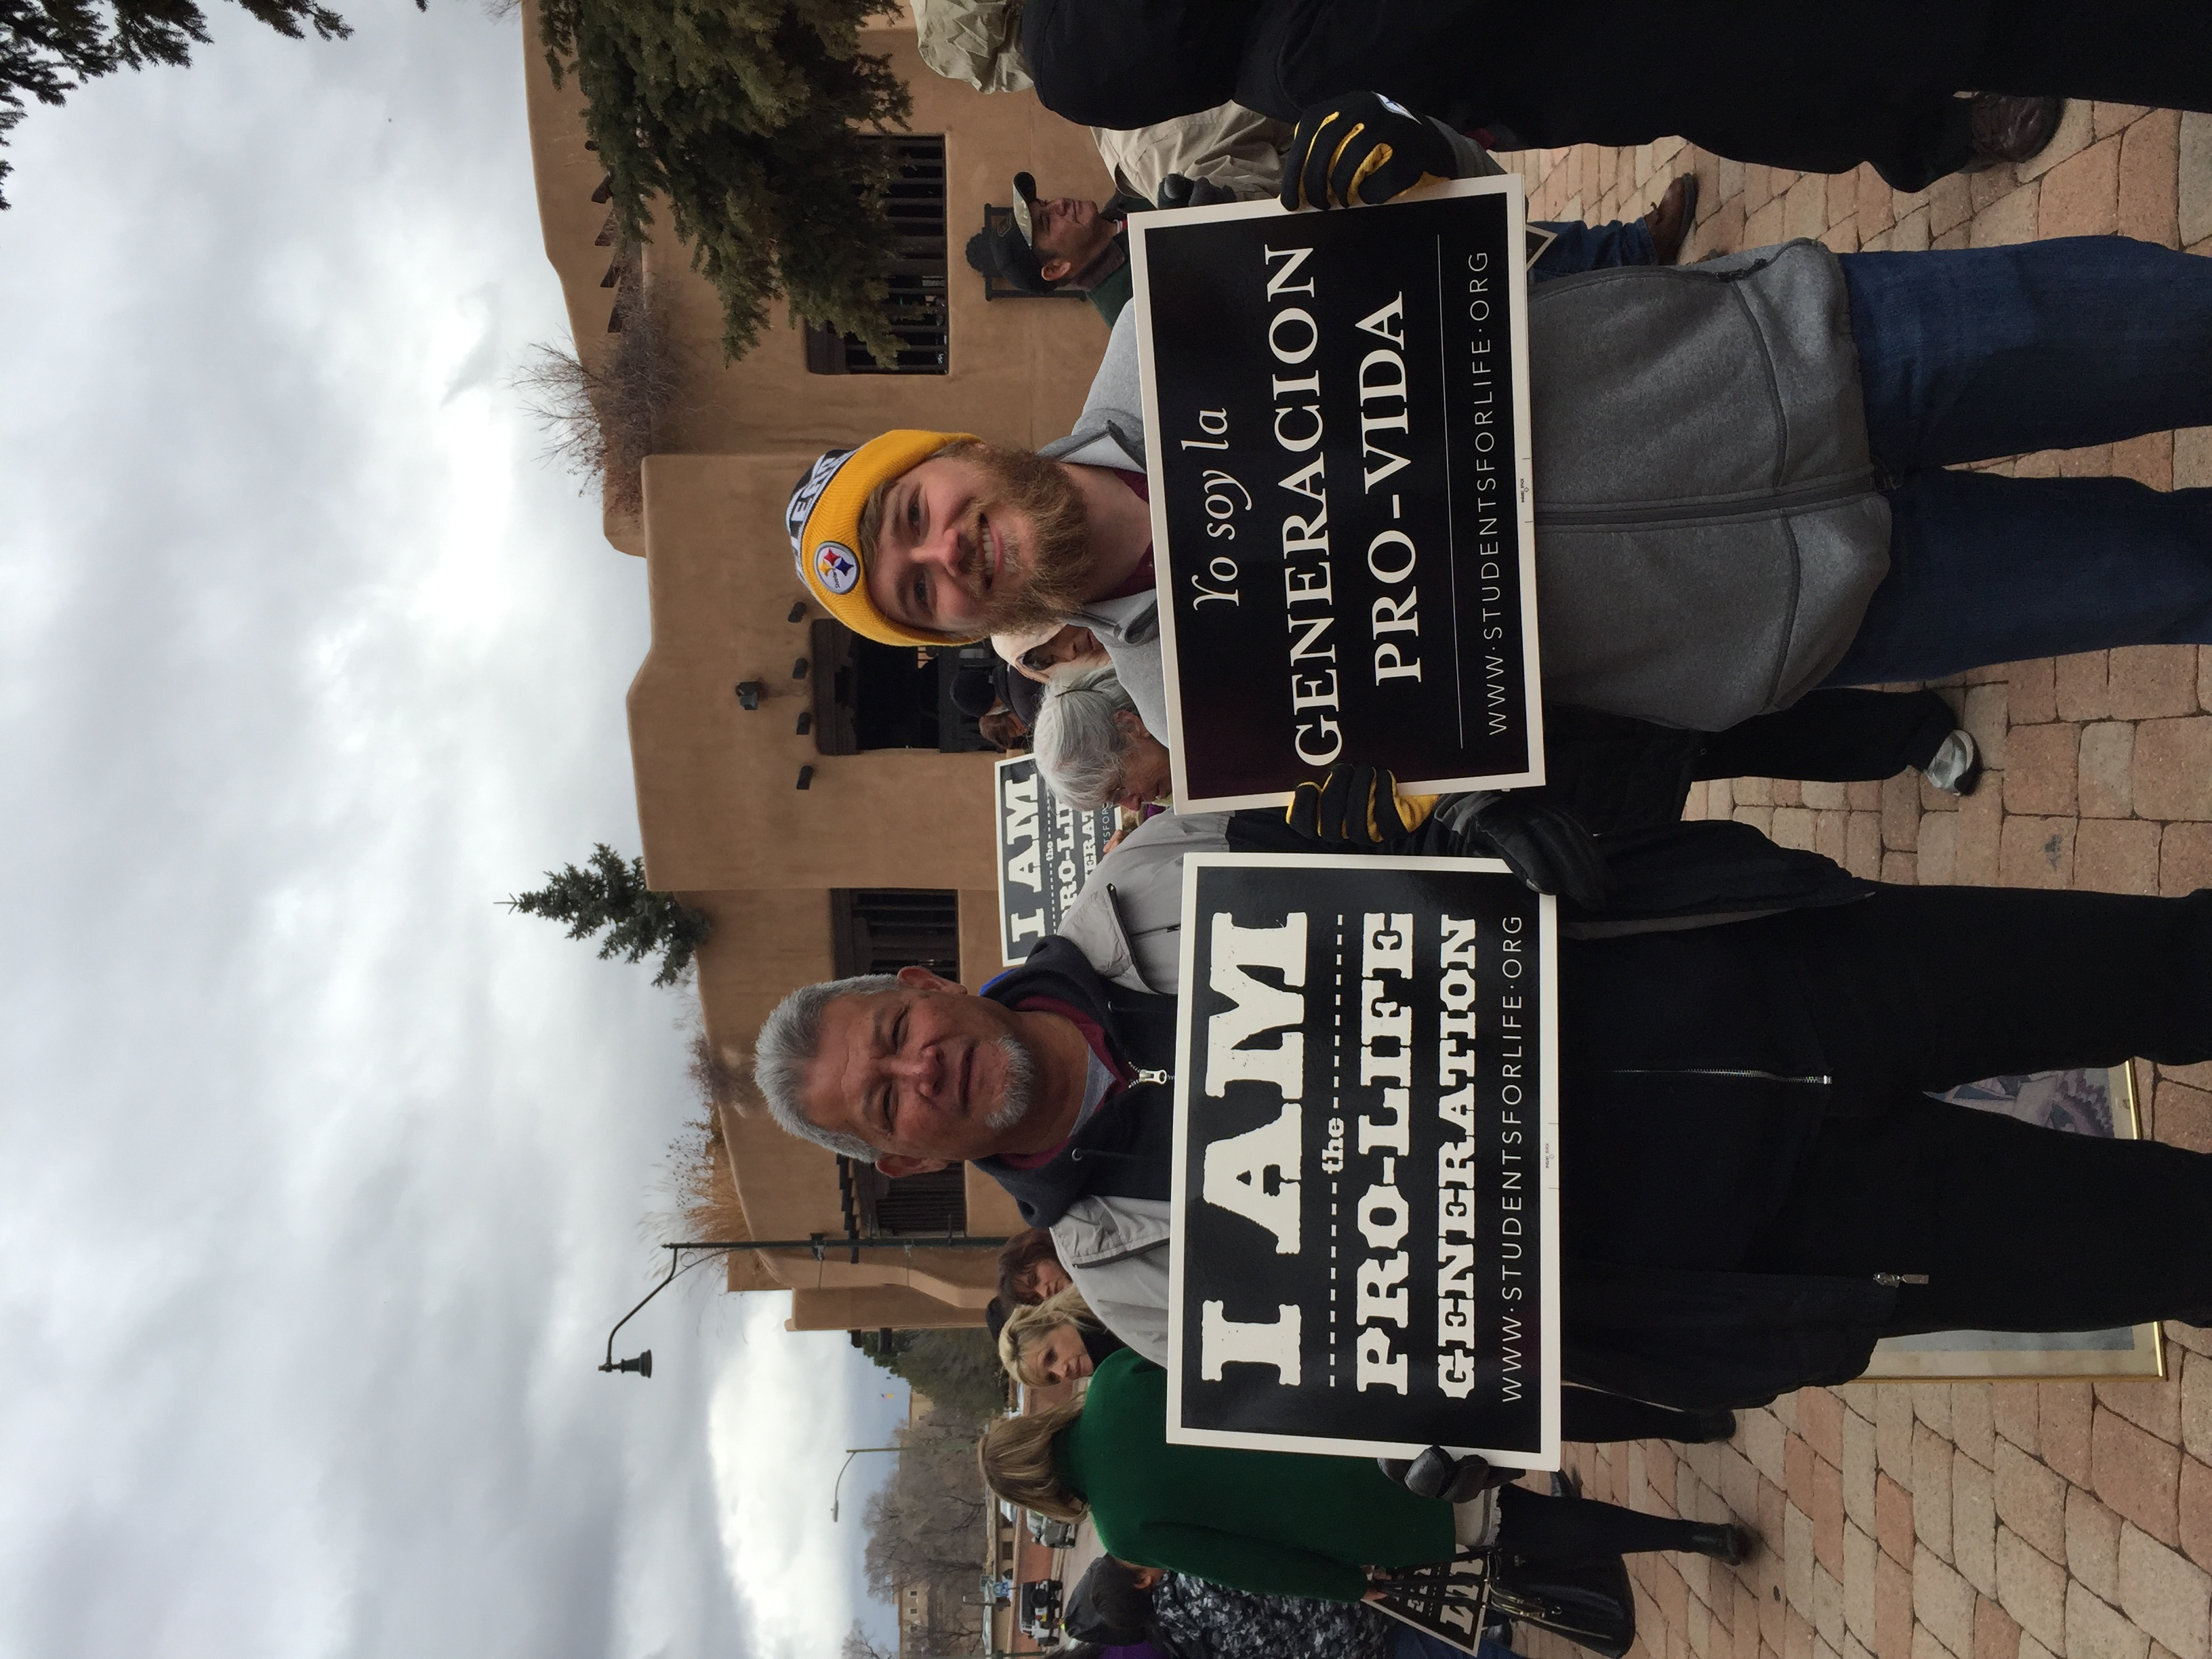 2016 Sanctity of Life Santa Fe